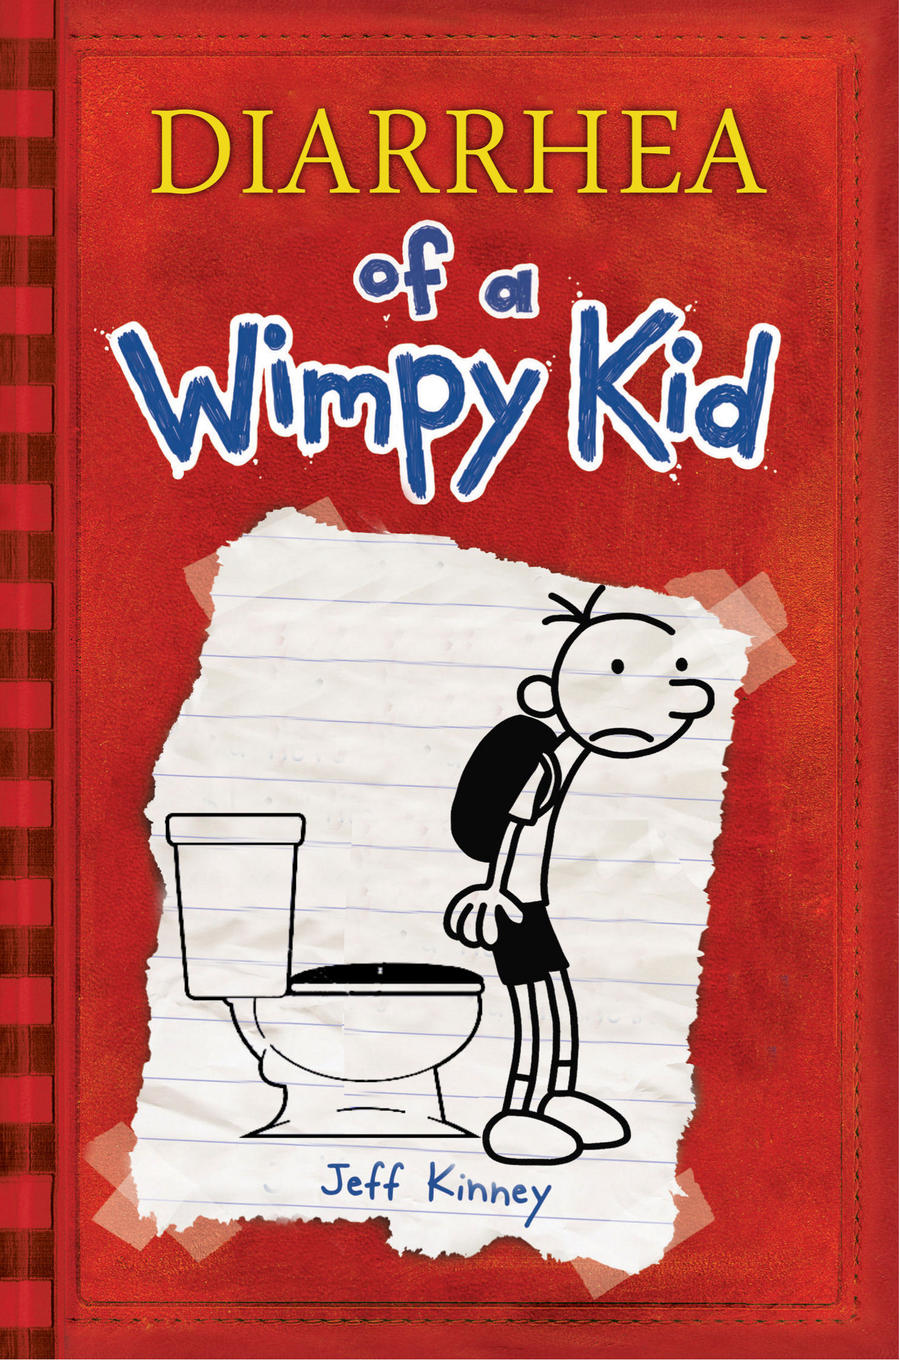 how to draw diary of a wimpy kid book cover